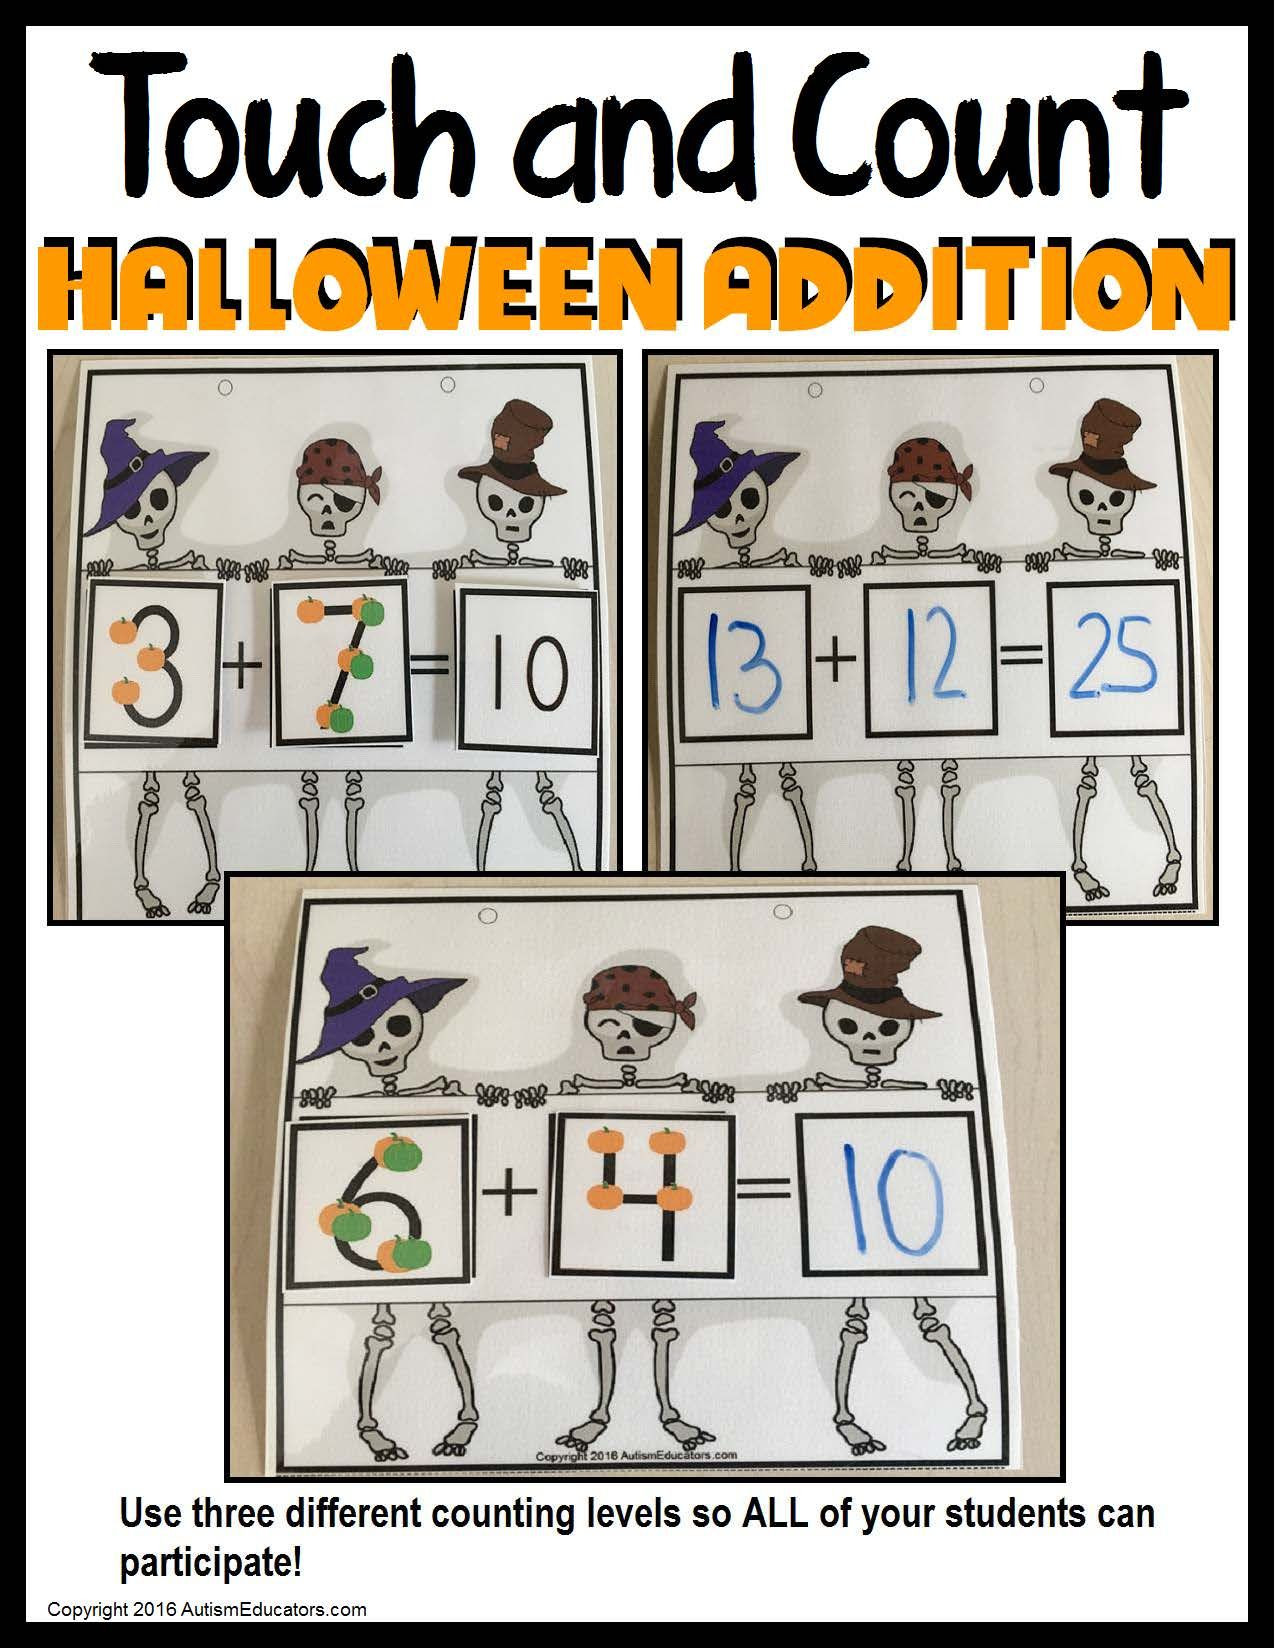 Touch Math Worksheet Generator touch and Count Math – Halloween Addition Using touch Math